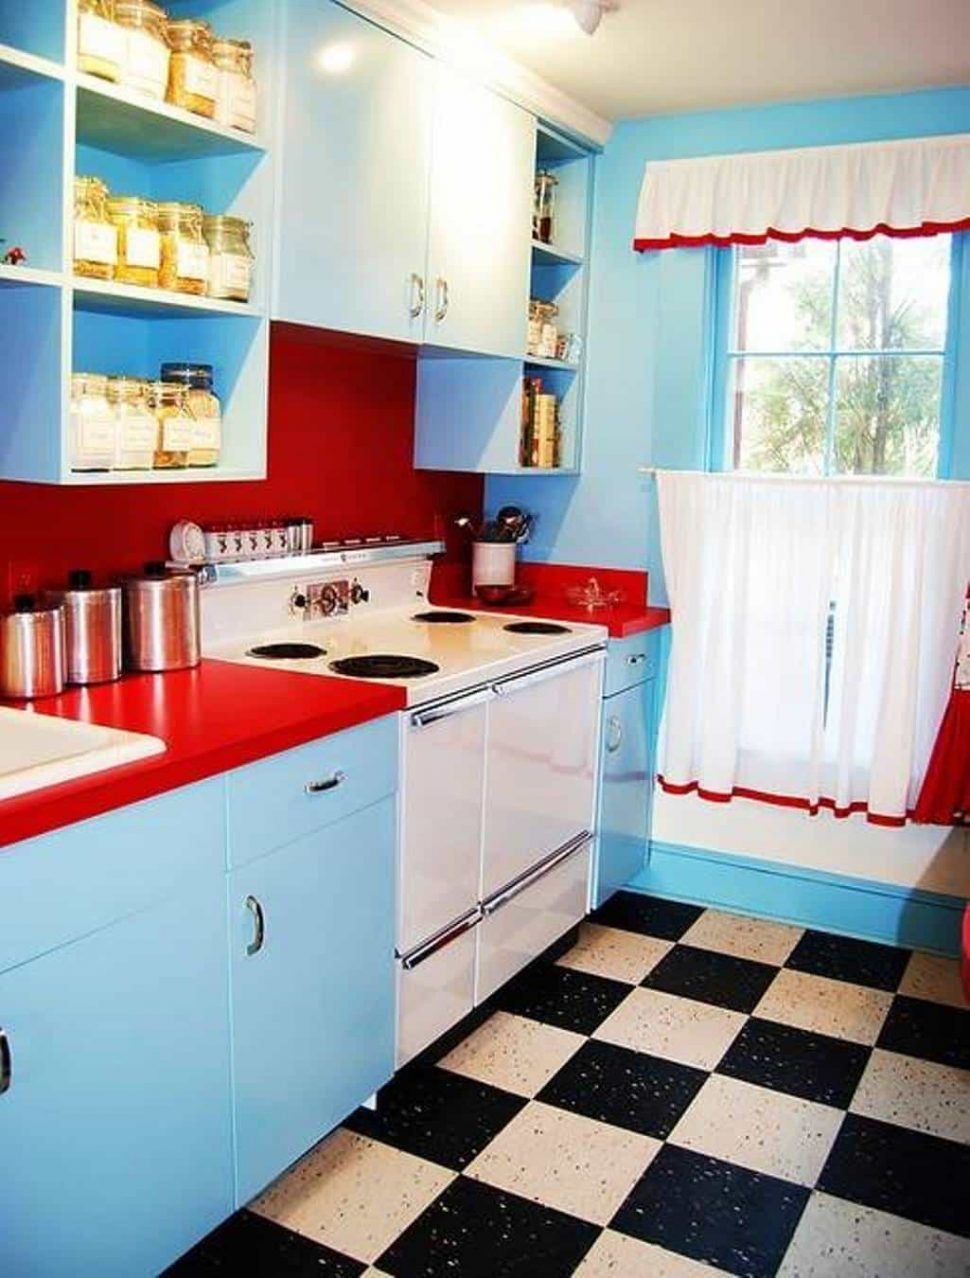 kitchen:Surprising Colorful 50s Style House Ideas Kitchenating Diner ...